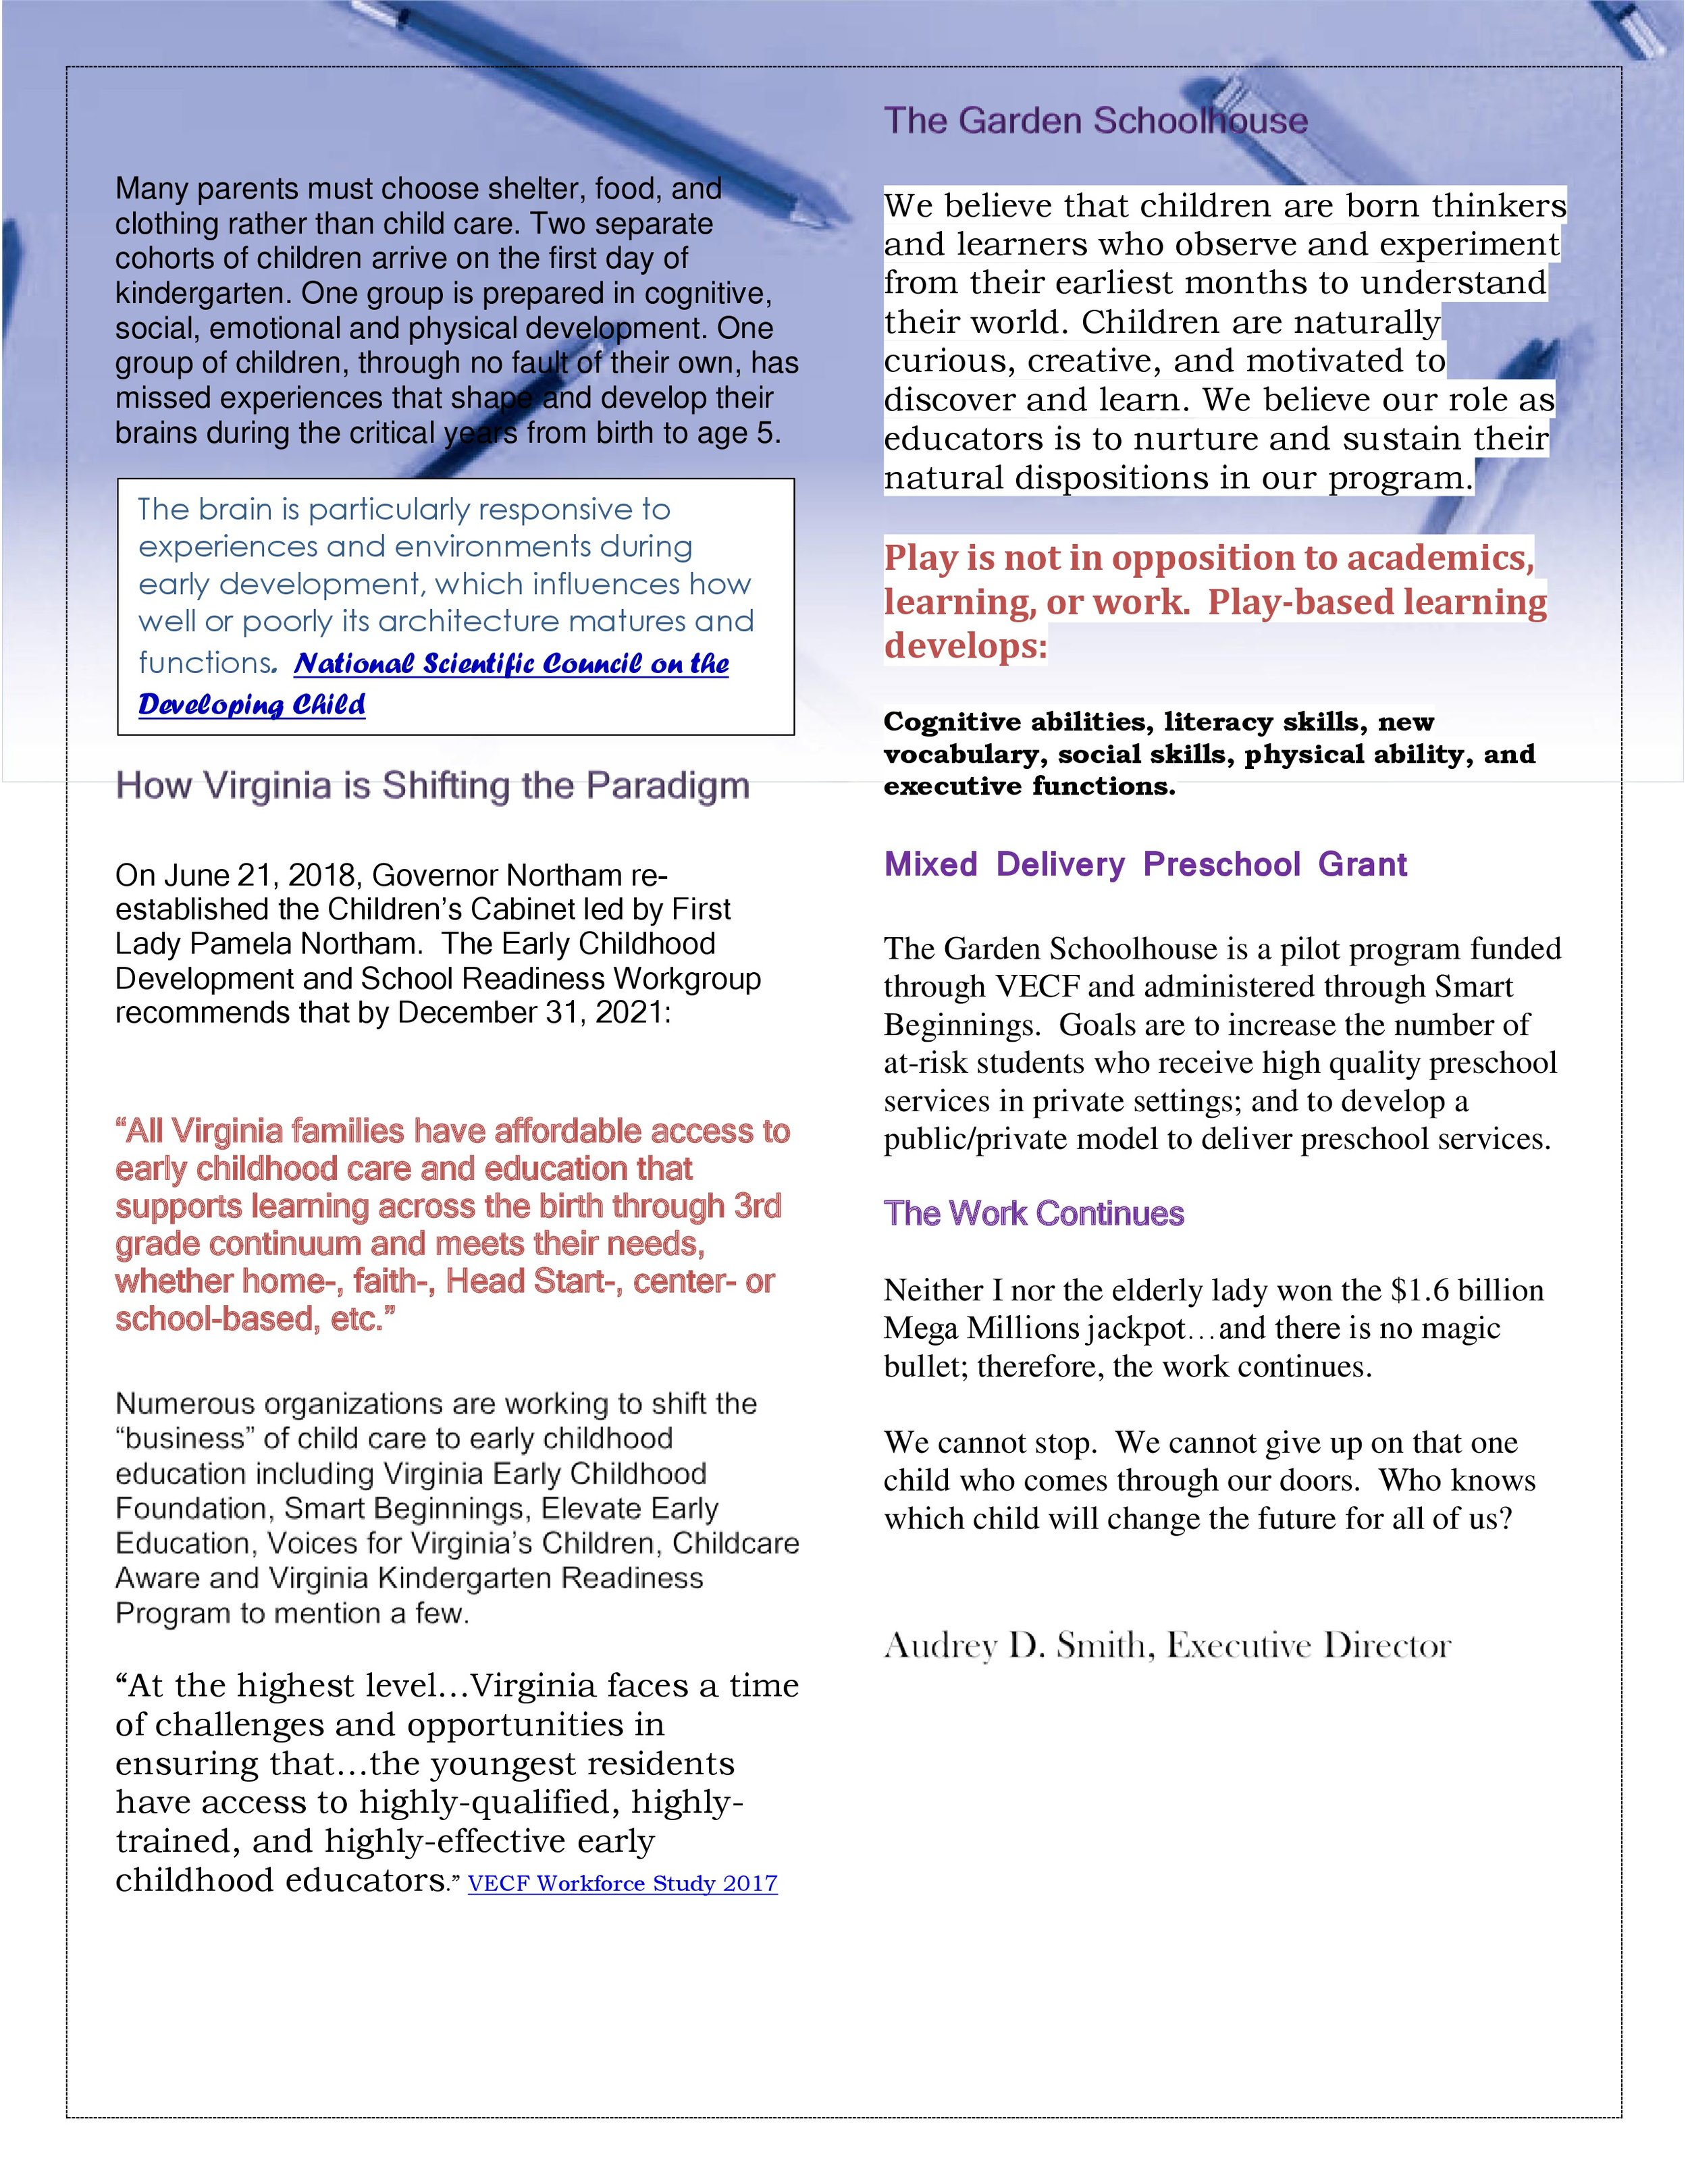 Final The Work of Early Childhood Education-page-1.jpg